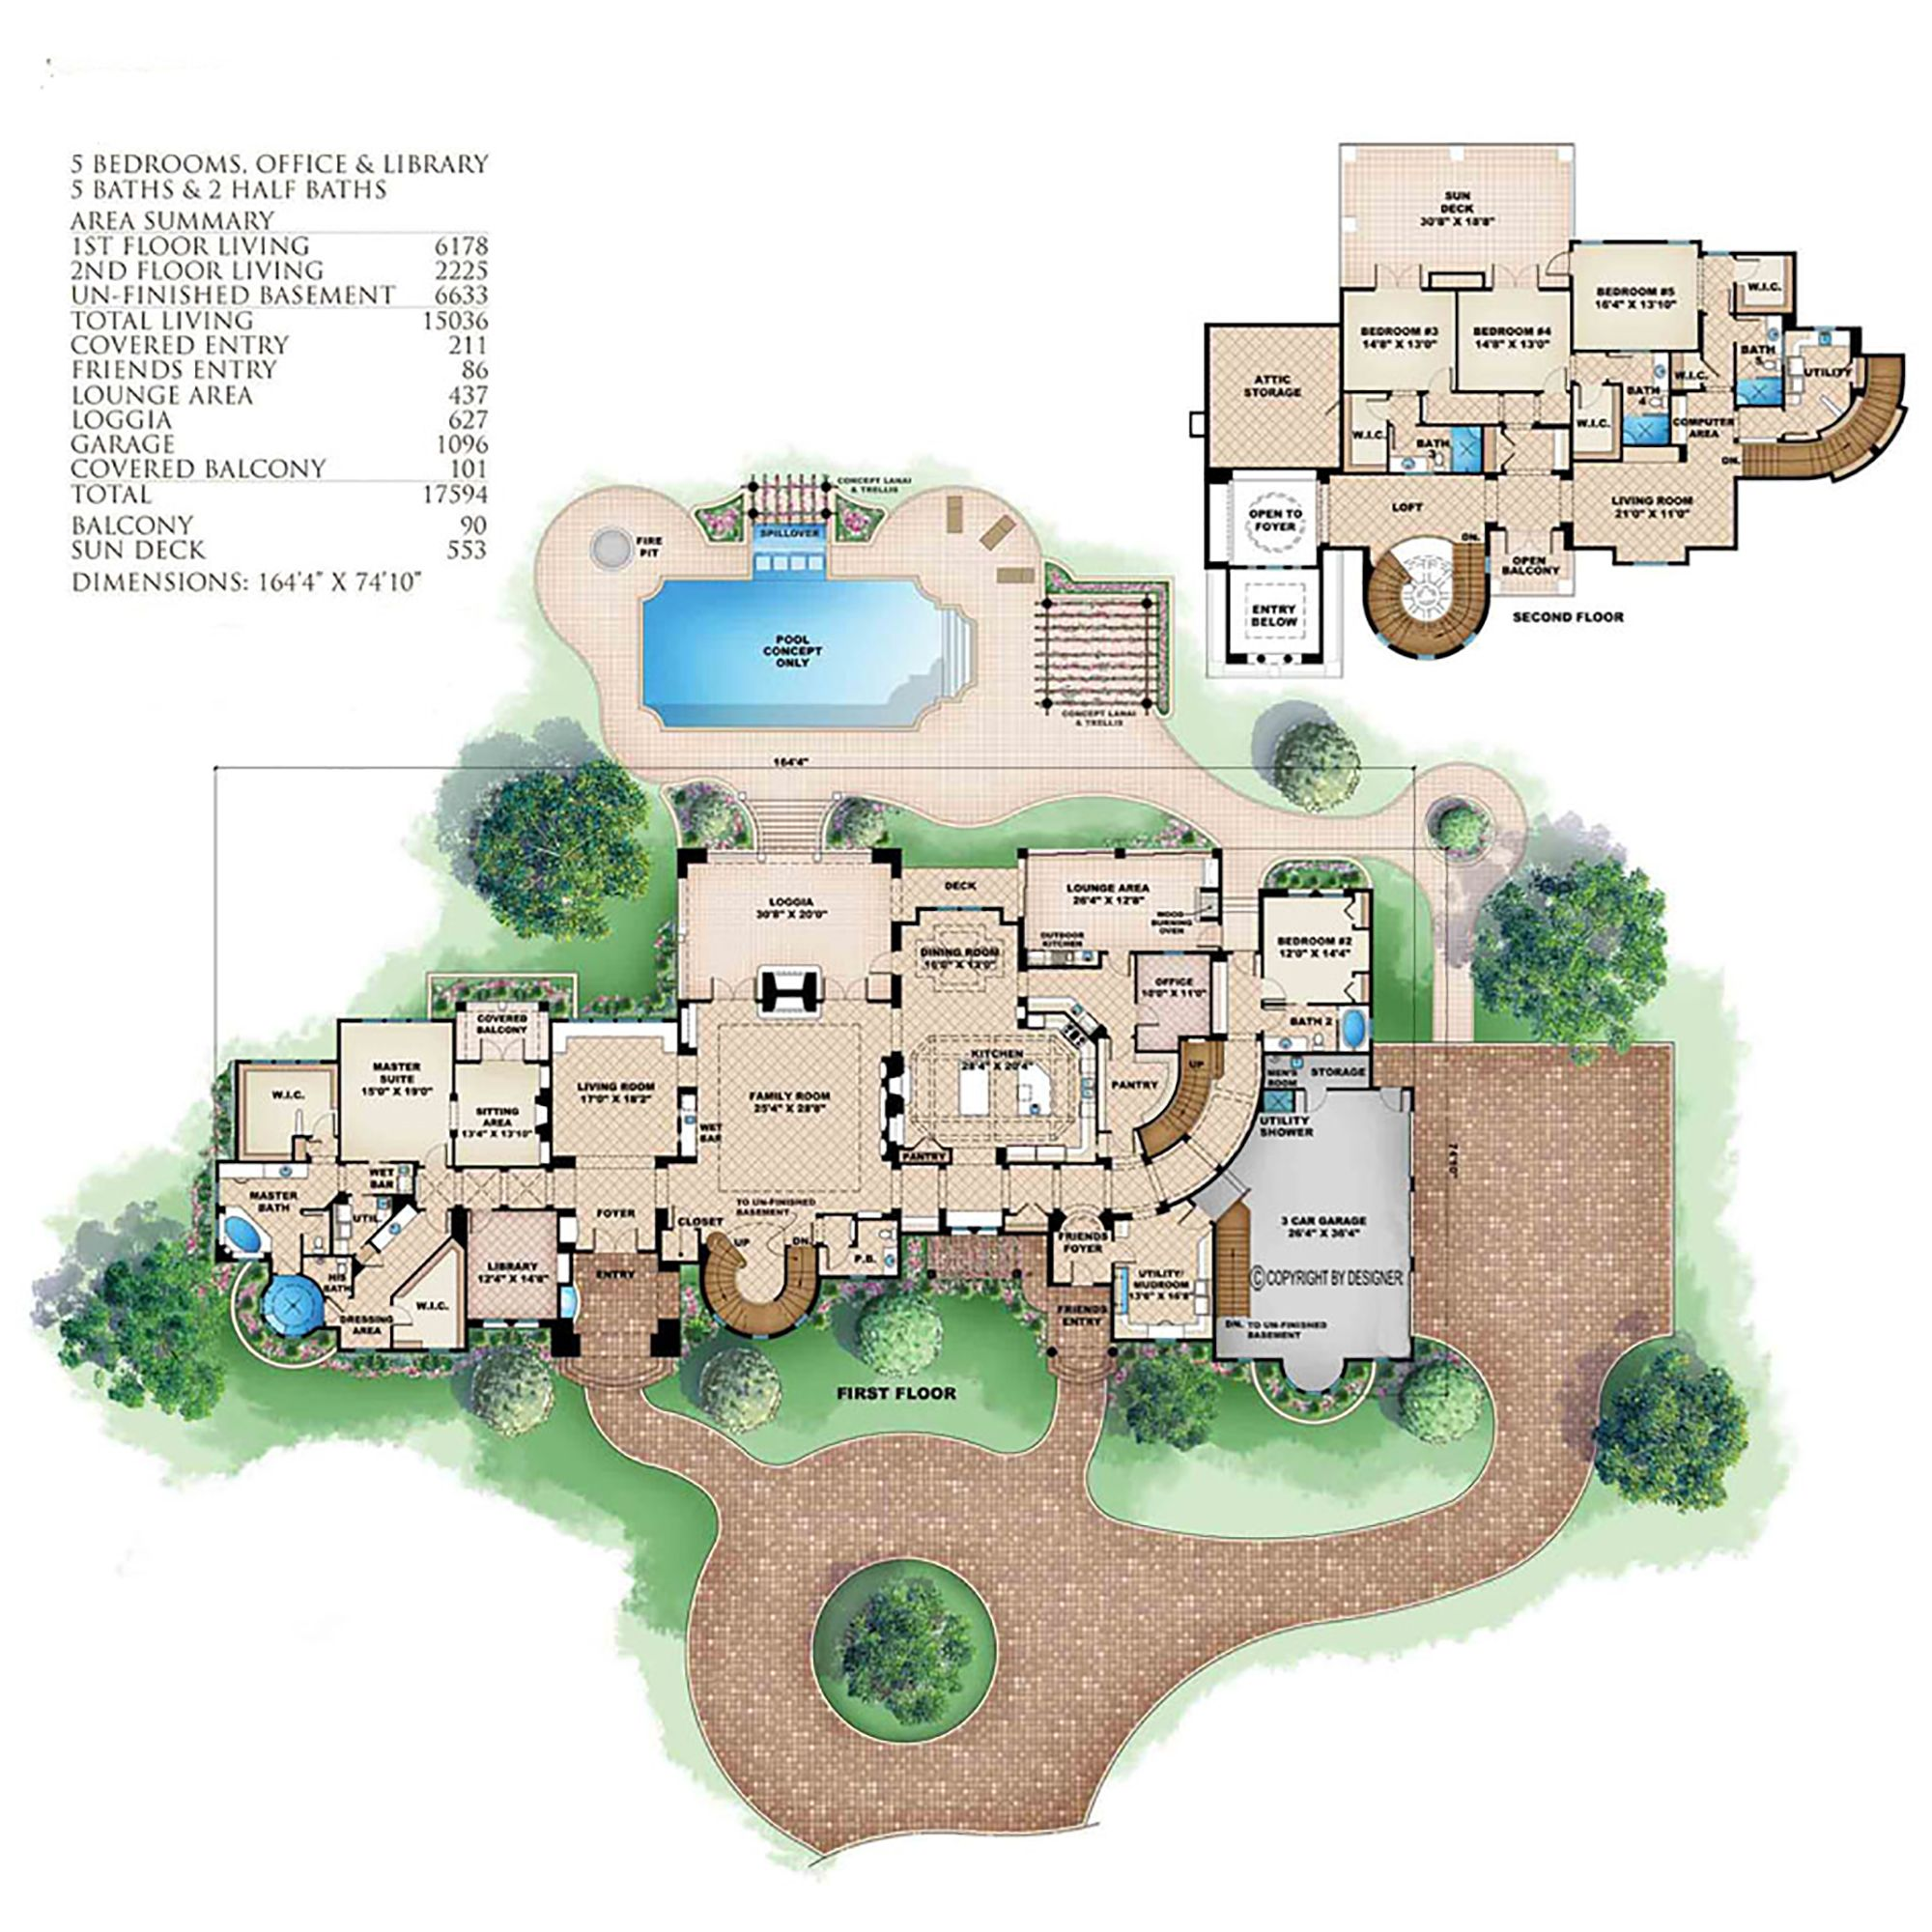 Plan 021292 We Offer A Variety Of Elite House Plans